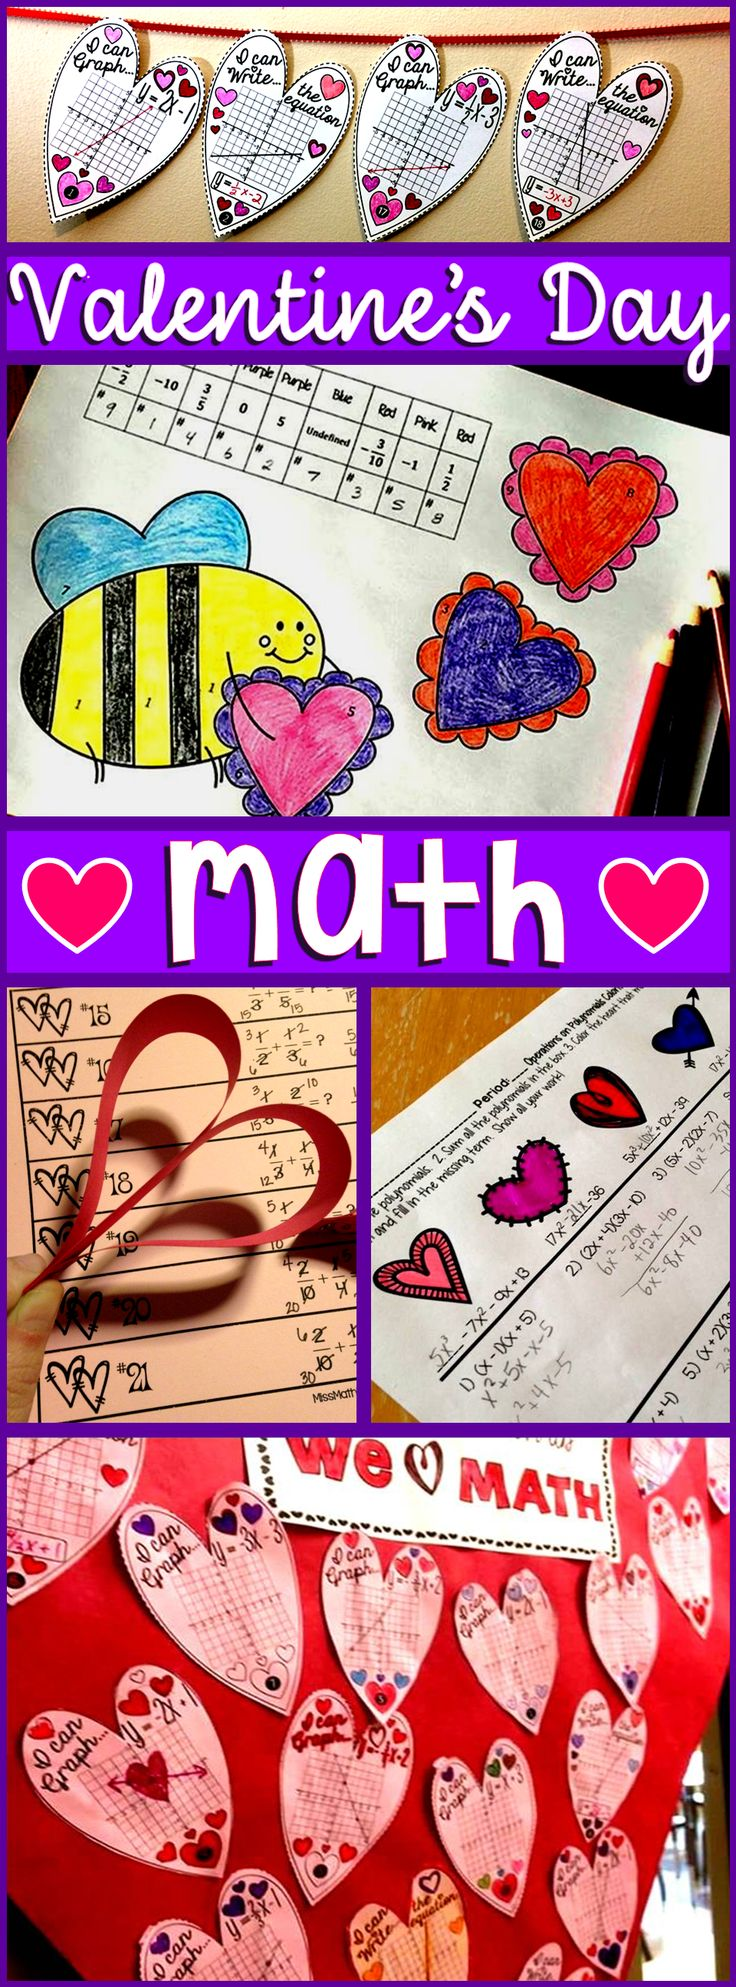 \Valentines Day can be SO tricky to navigate, especially when teenage hormones are involved! I asked some math friends if they had any fun, Valentine's Day math activities to keep students working on this highly distactible holiday. They sent over some great stuff for middle school math, including fractions, Algebra, including a linear equations math pennant, Algebra 2, including polynomials, and geometry, including the Pythagorean Theorem, all of which you can see below.